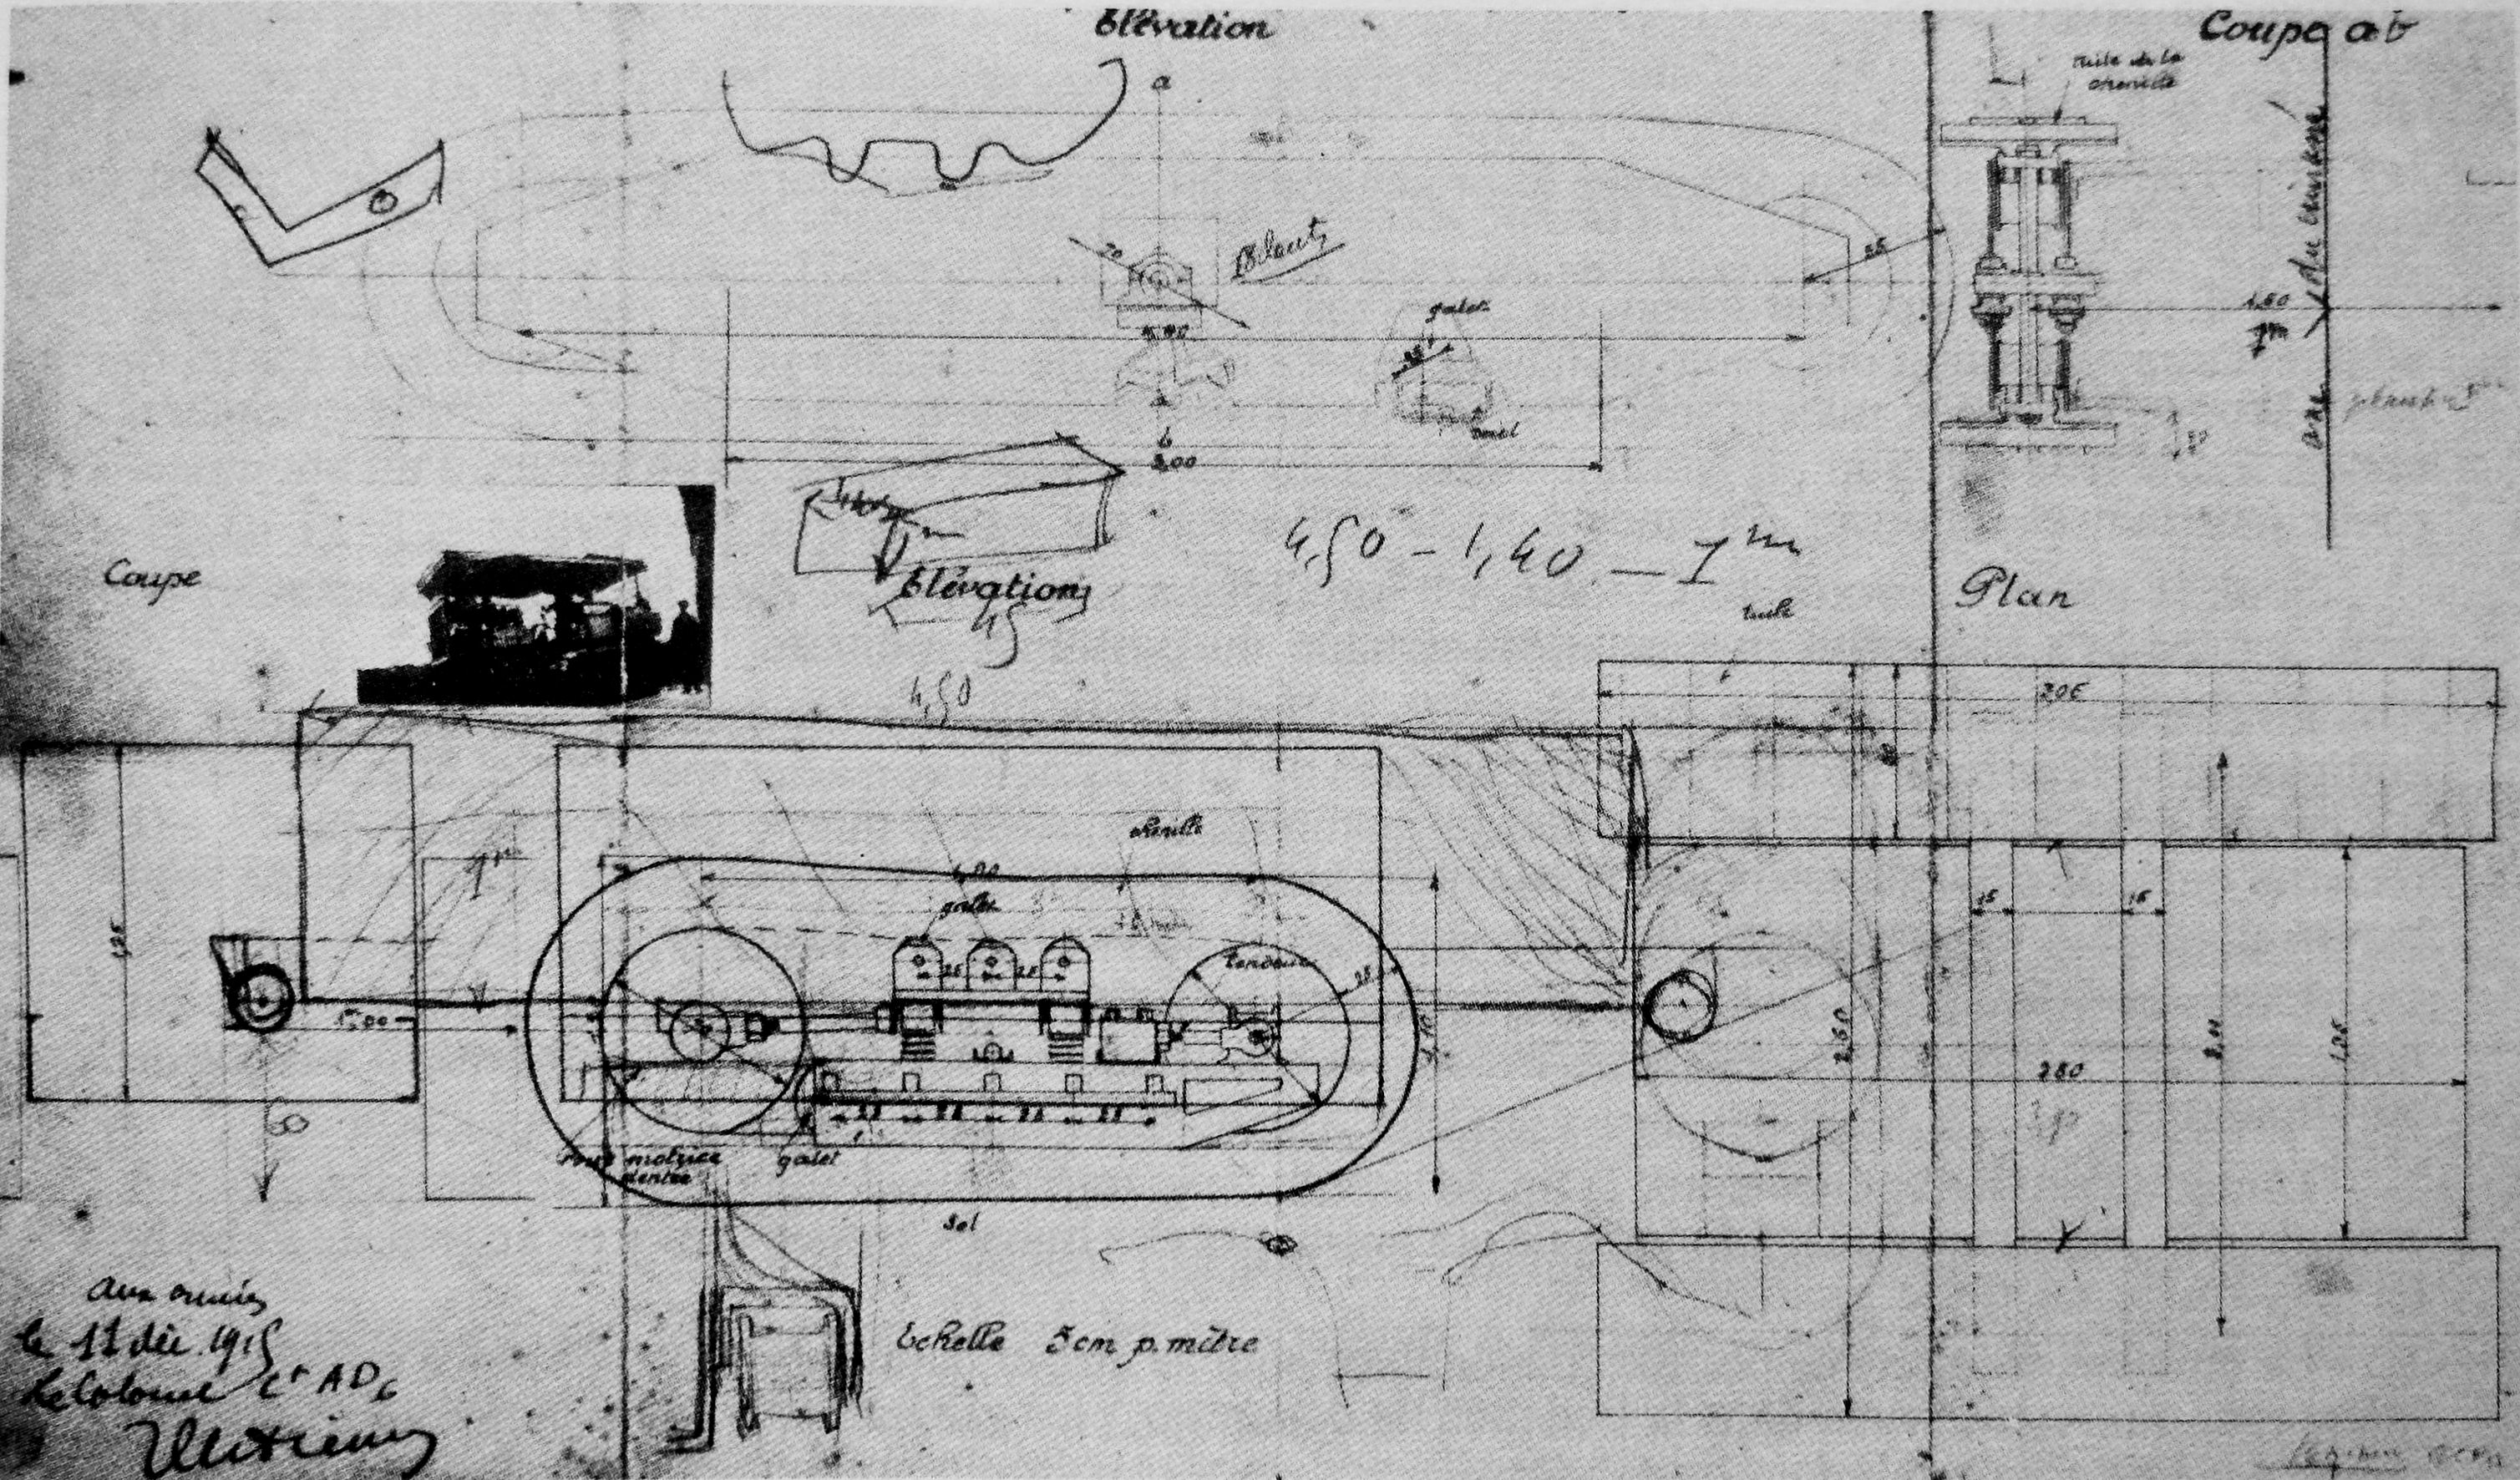 Col. Estienne specifications drawings